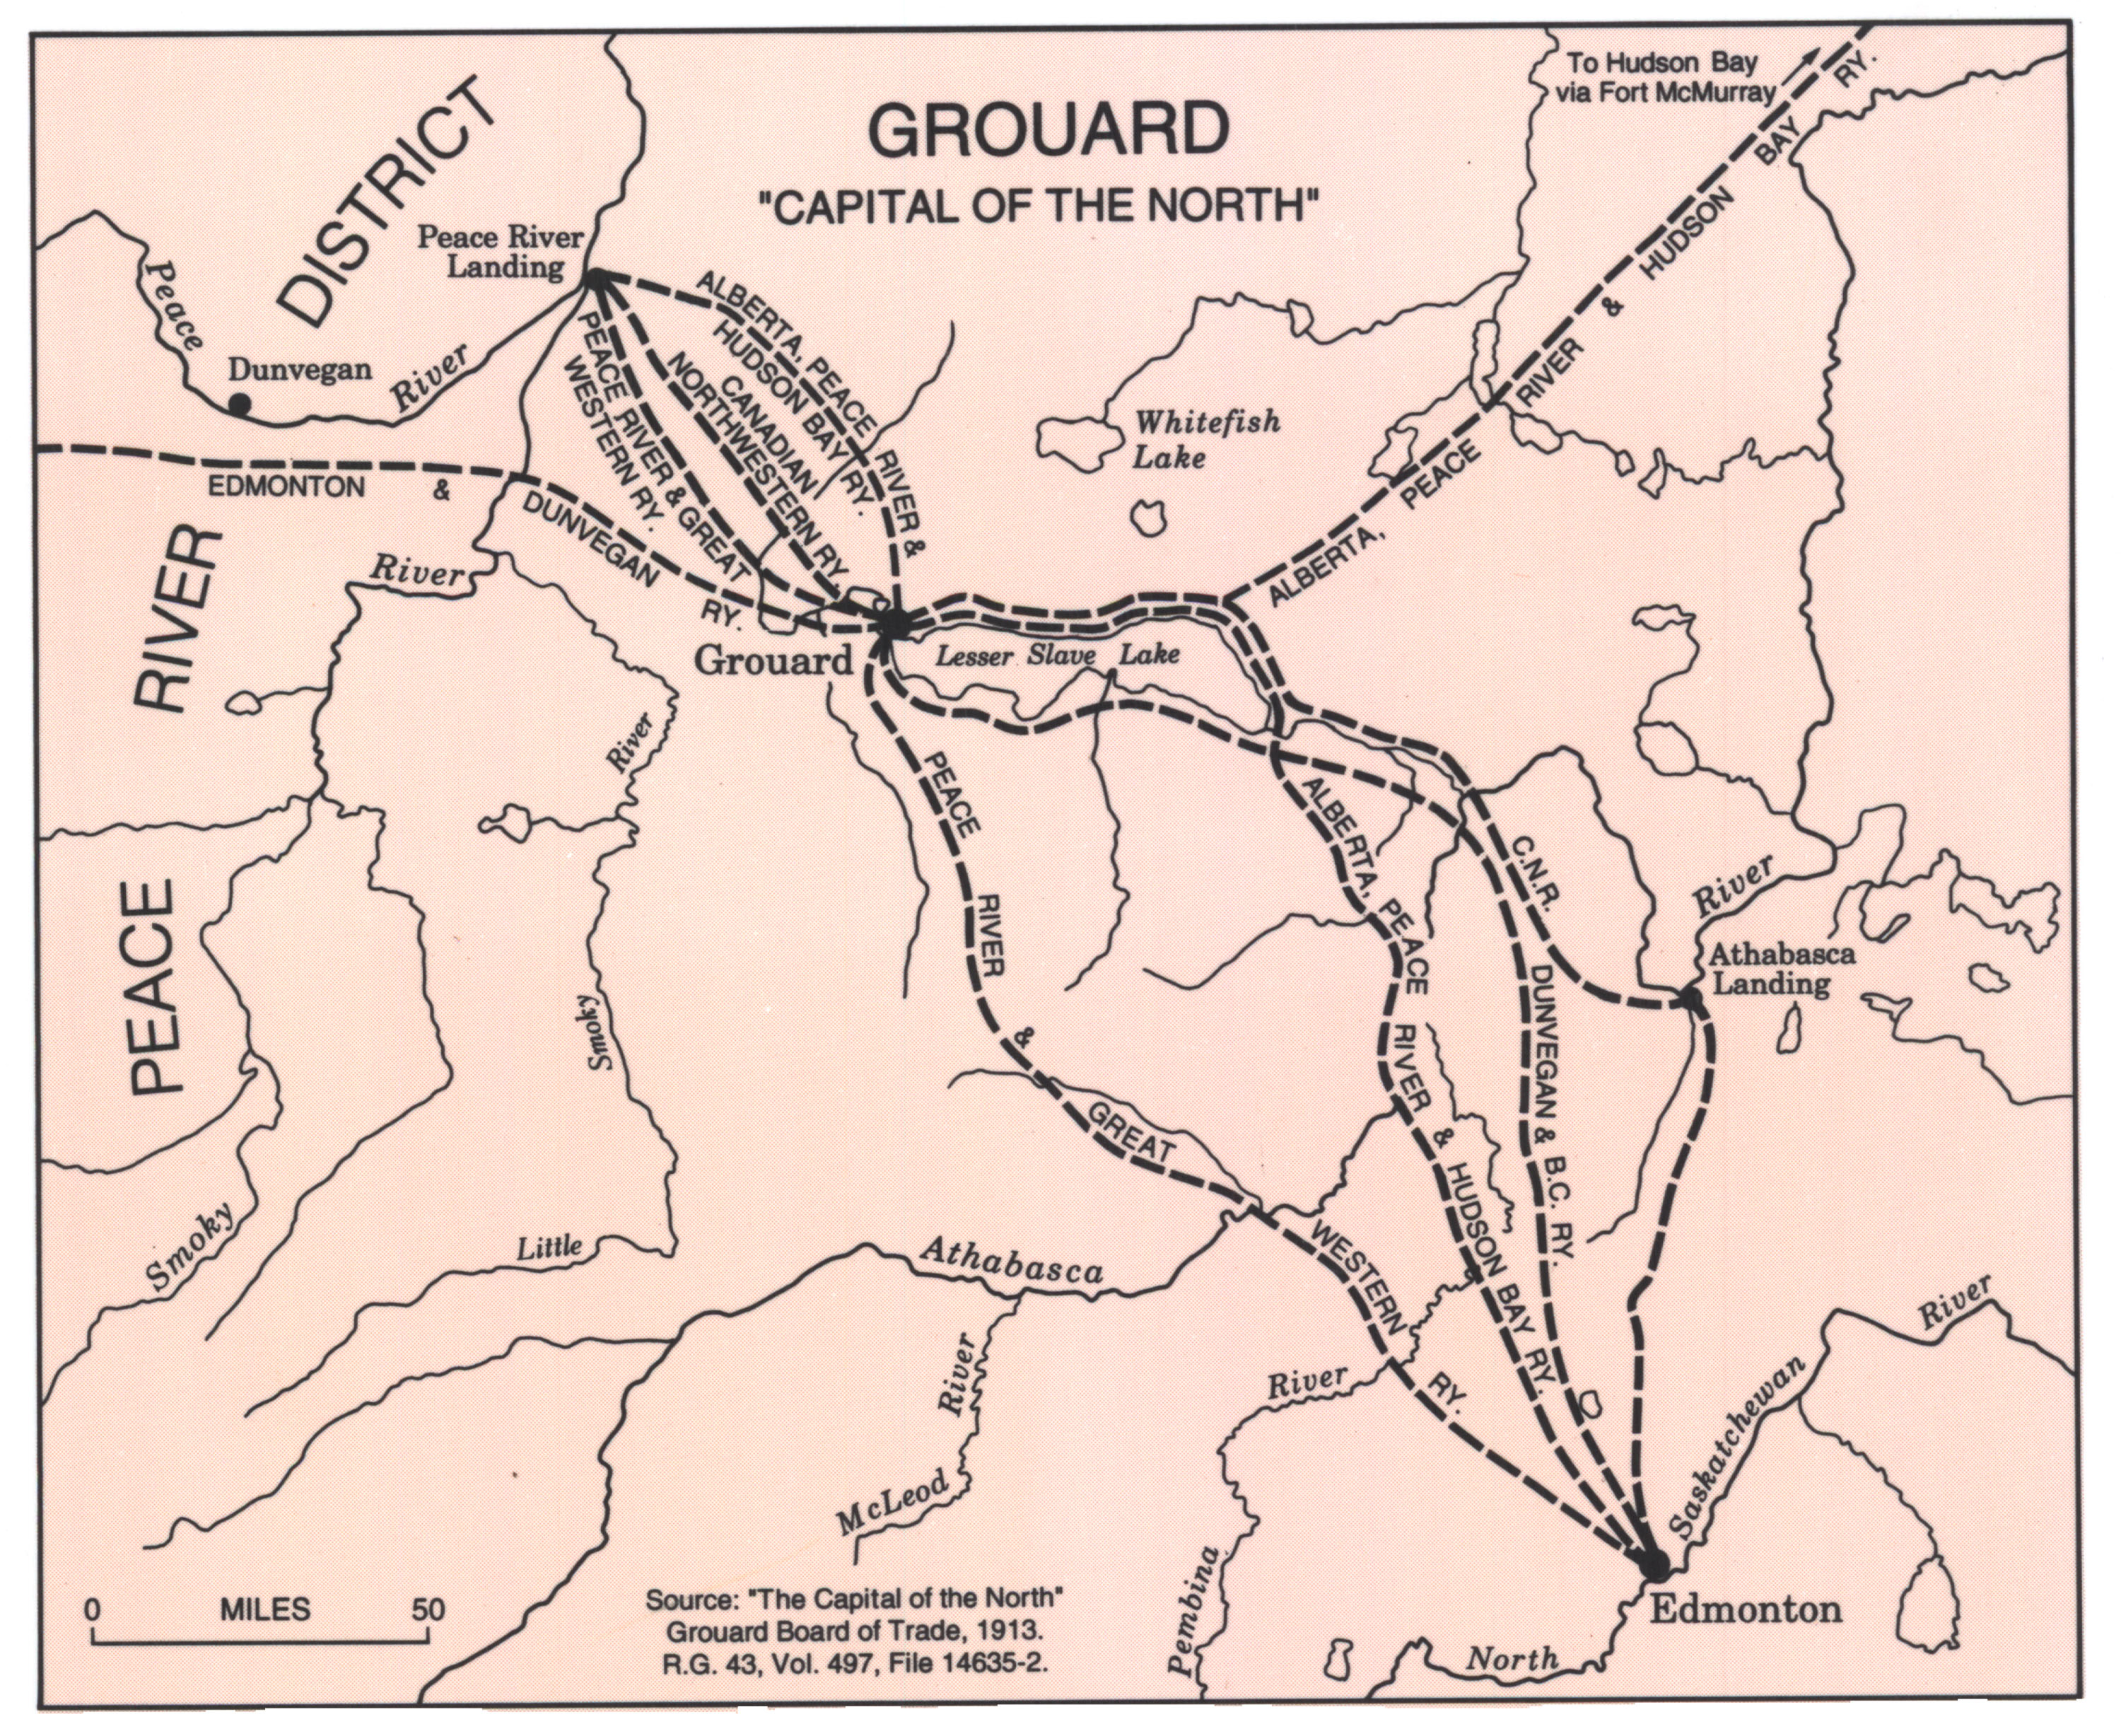 Grouard - The Capital of the North - Traderoutes in 1913